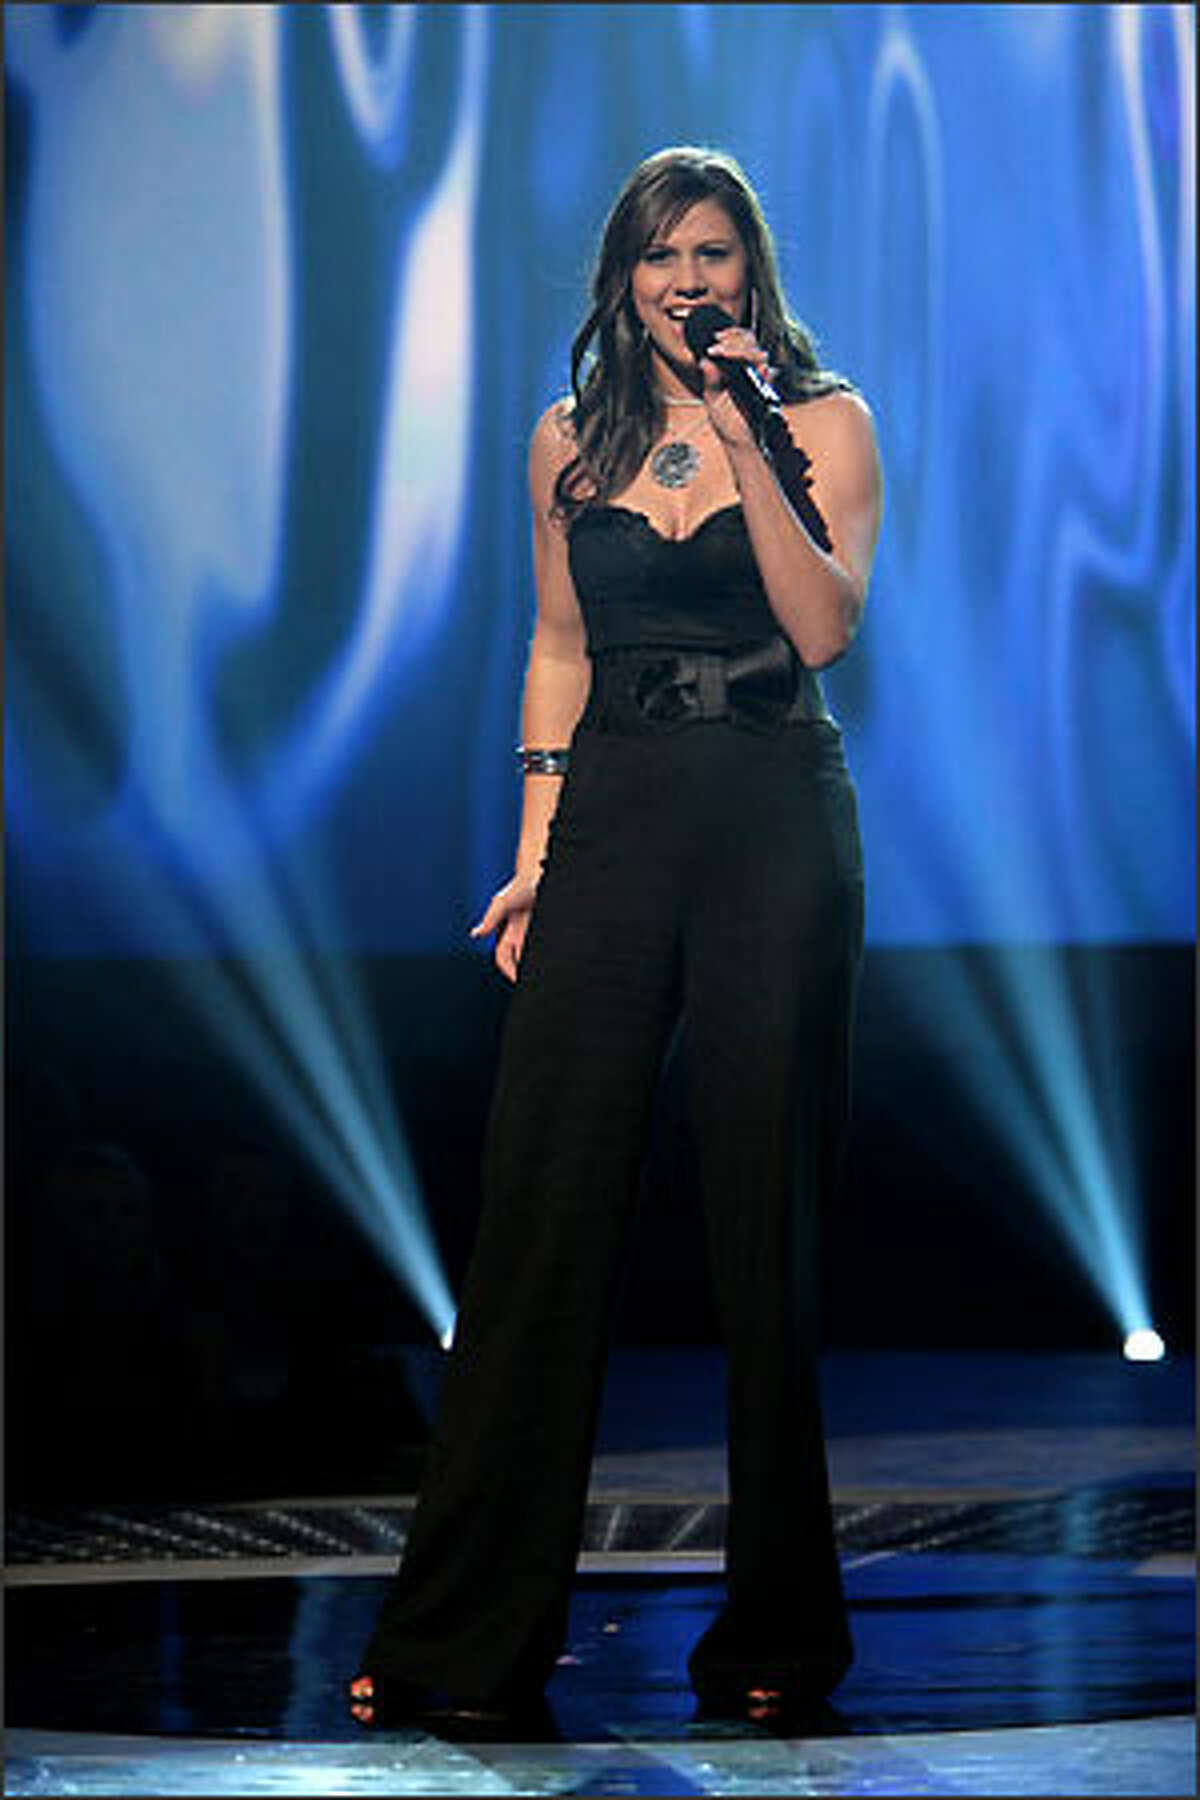 """Haley Scarnato performs in front of the judges on """"American Idol"""" Wednesday, Feb. 21, 2007."""